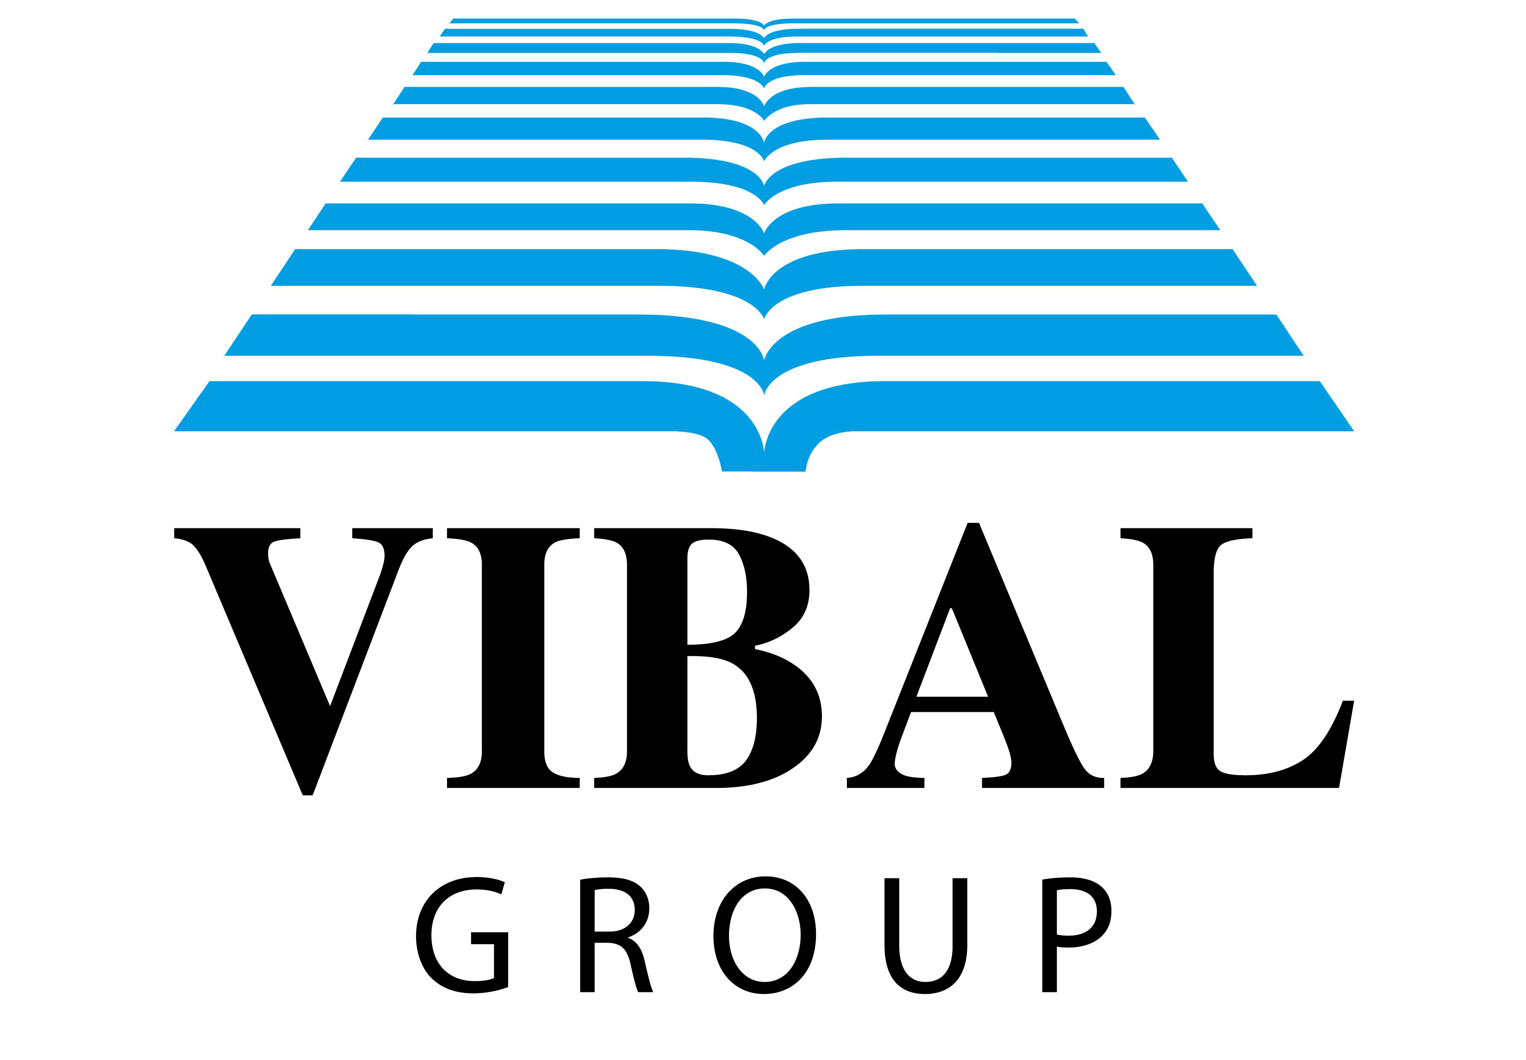 VIBAL GROUP